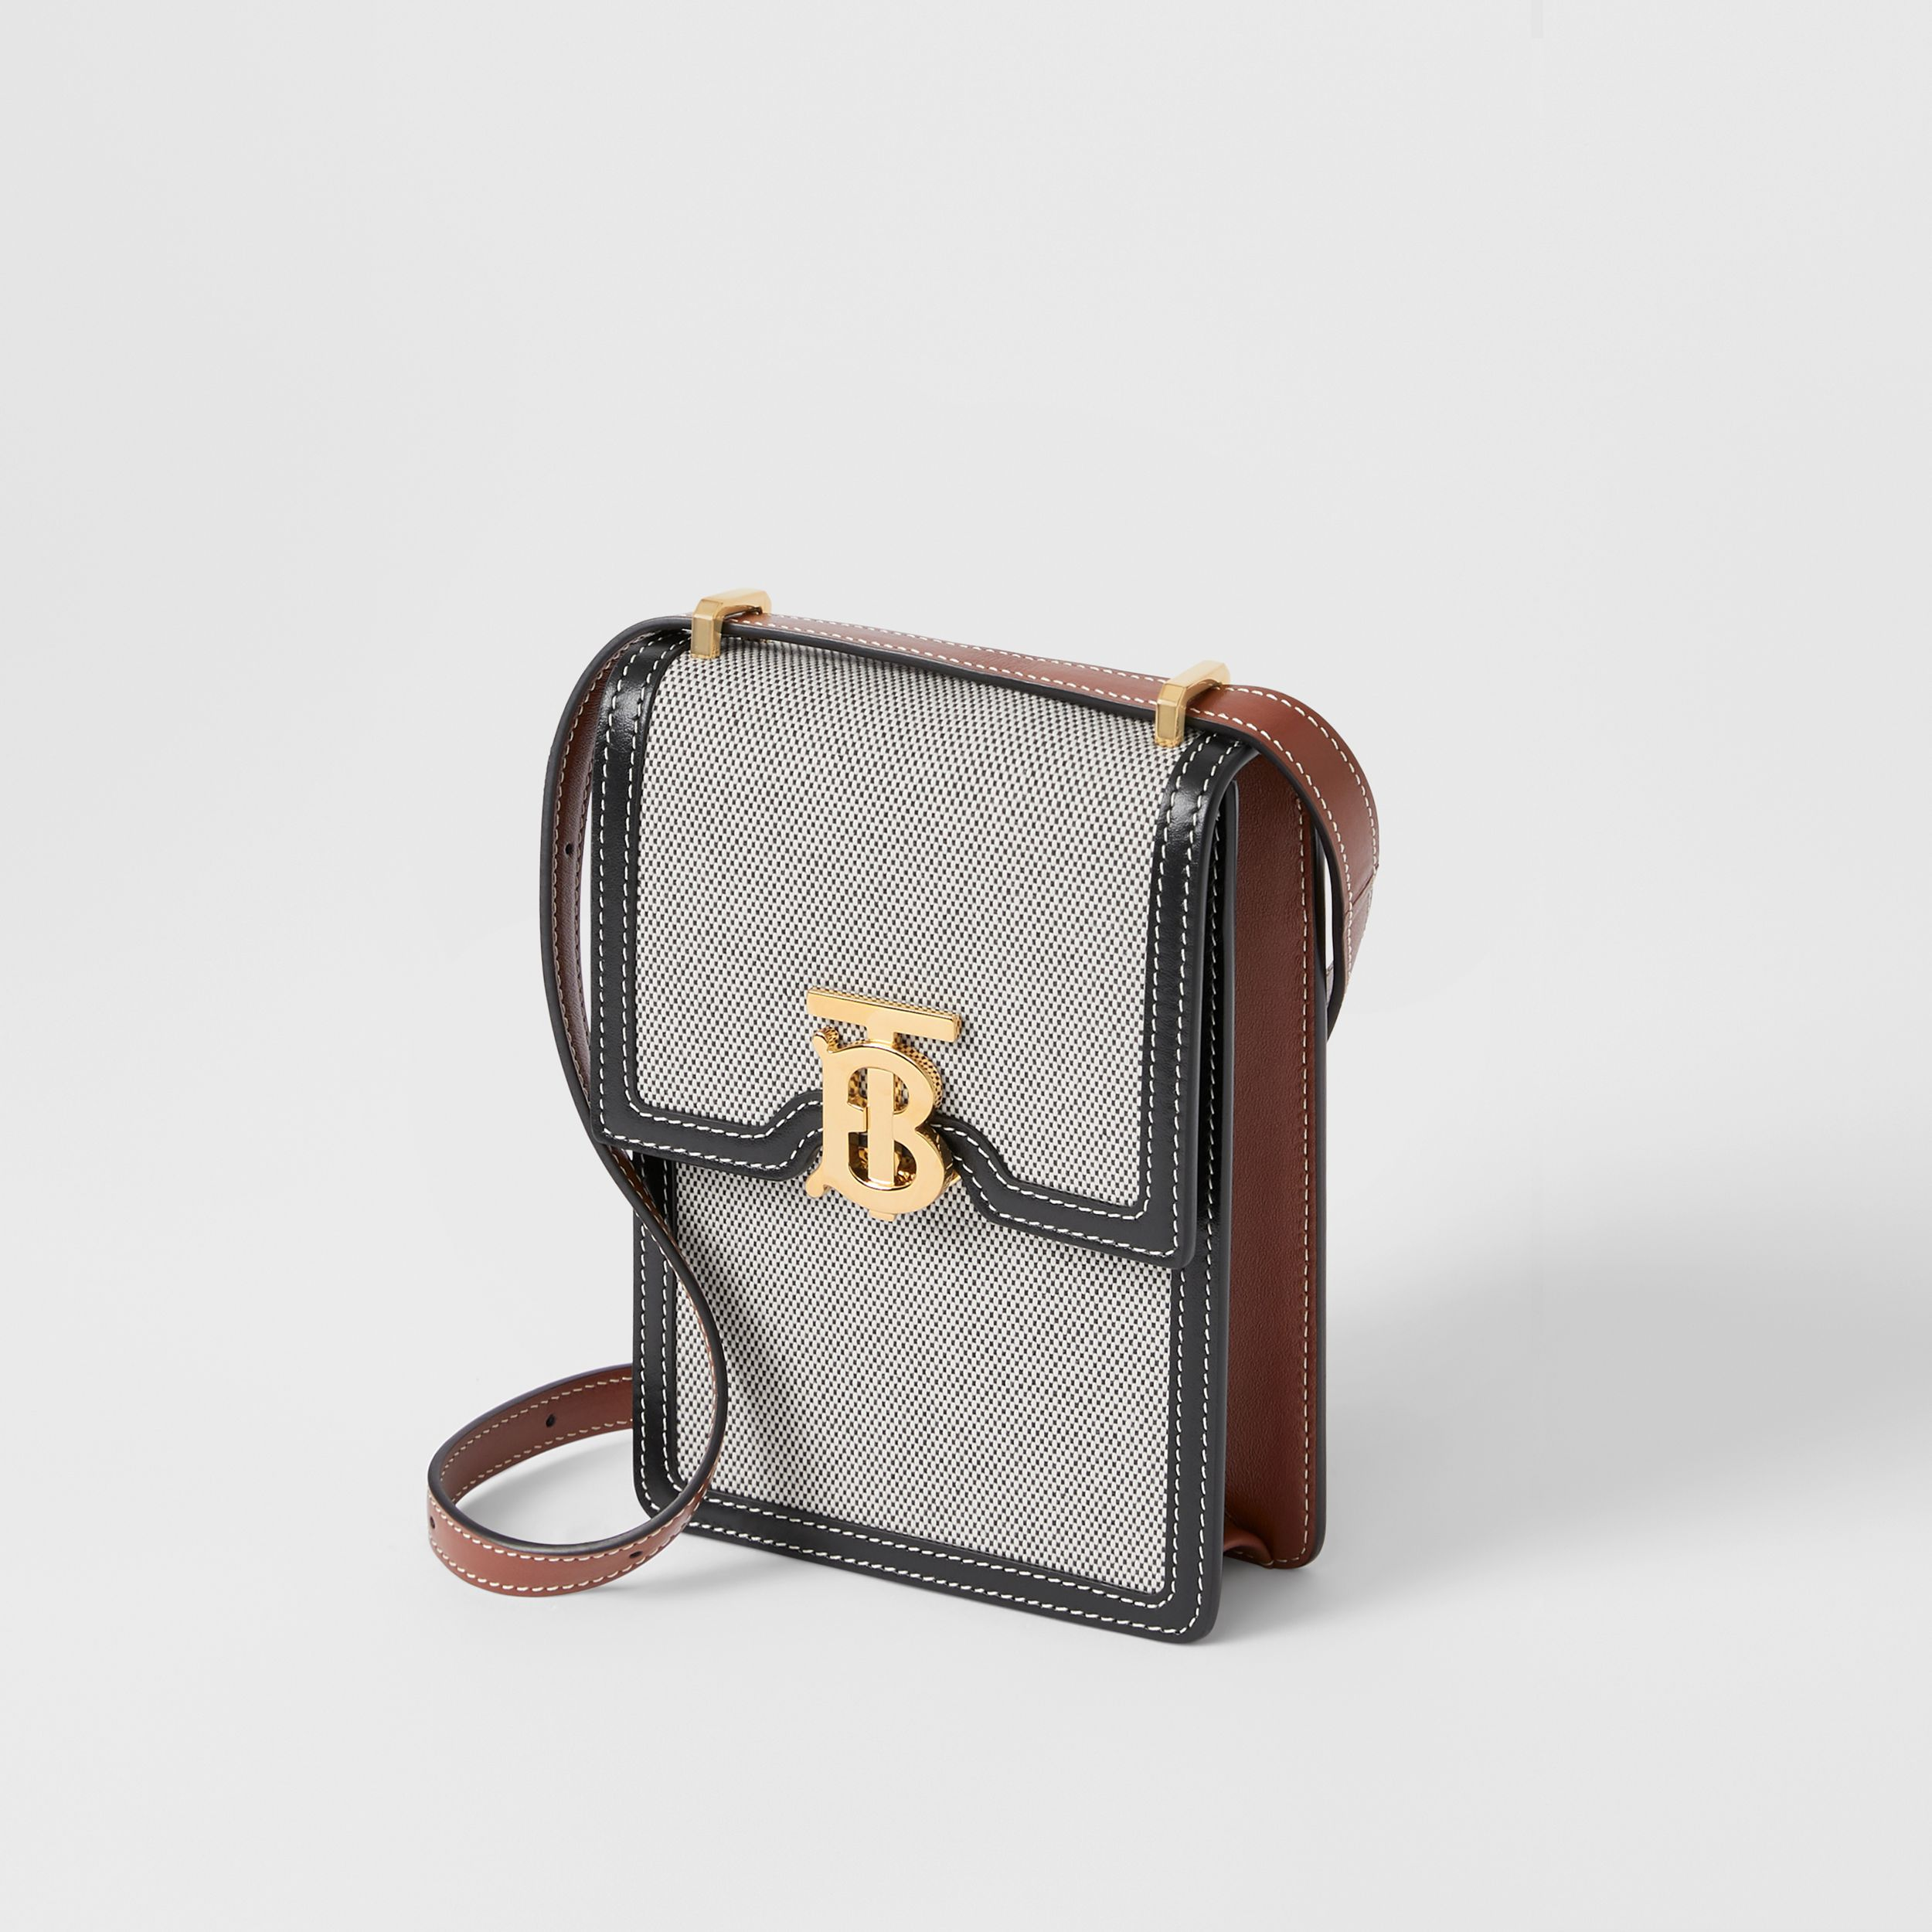 Cotton Canvas and Two-tone Leather Robin Bag in Black/tan - Women | Burberry Hong Kong S.A.R. - 4